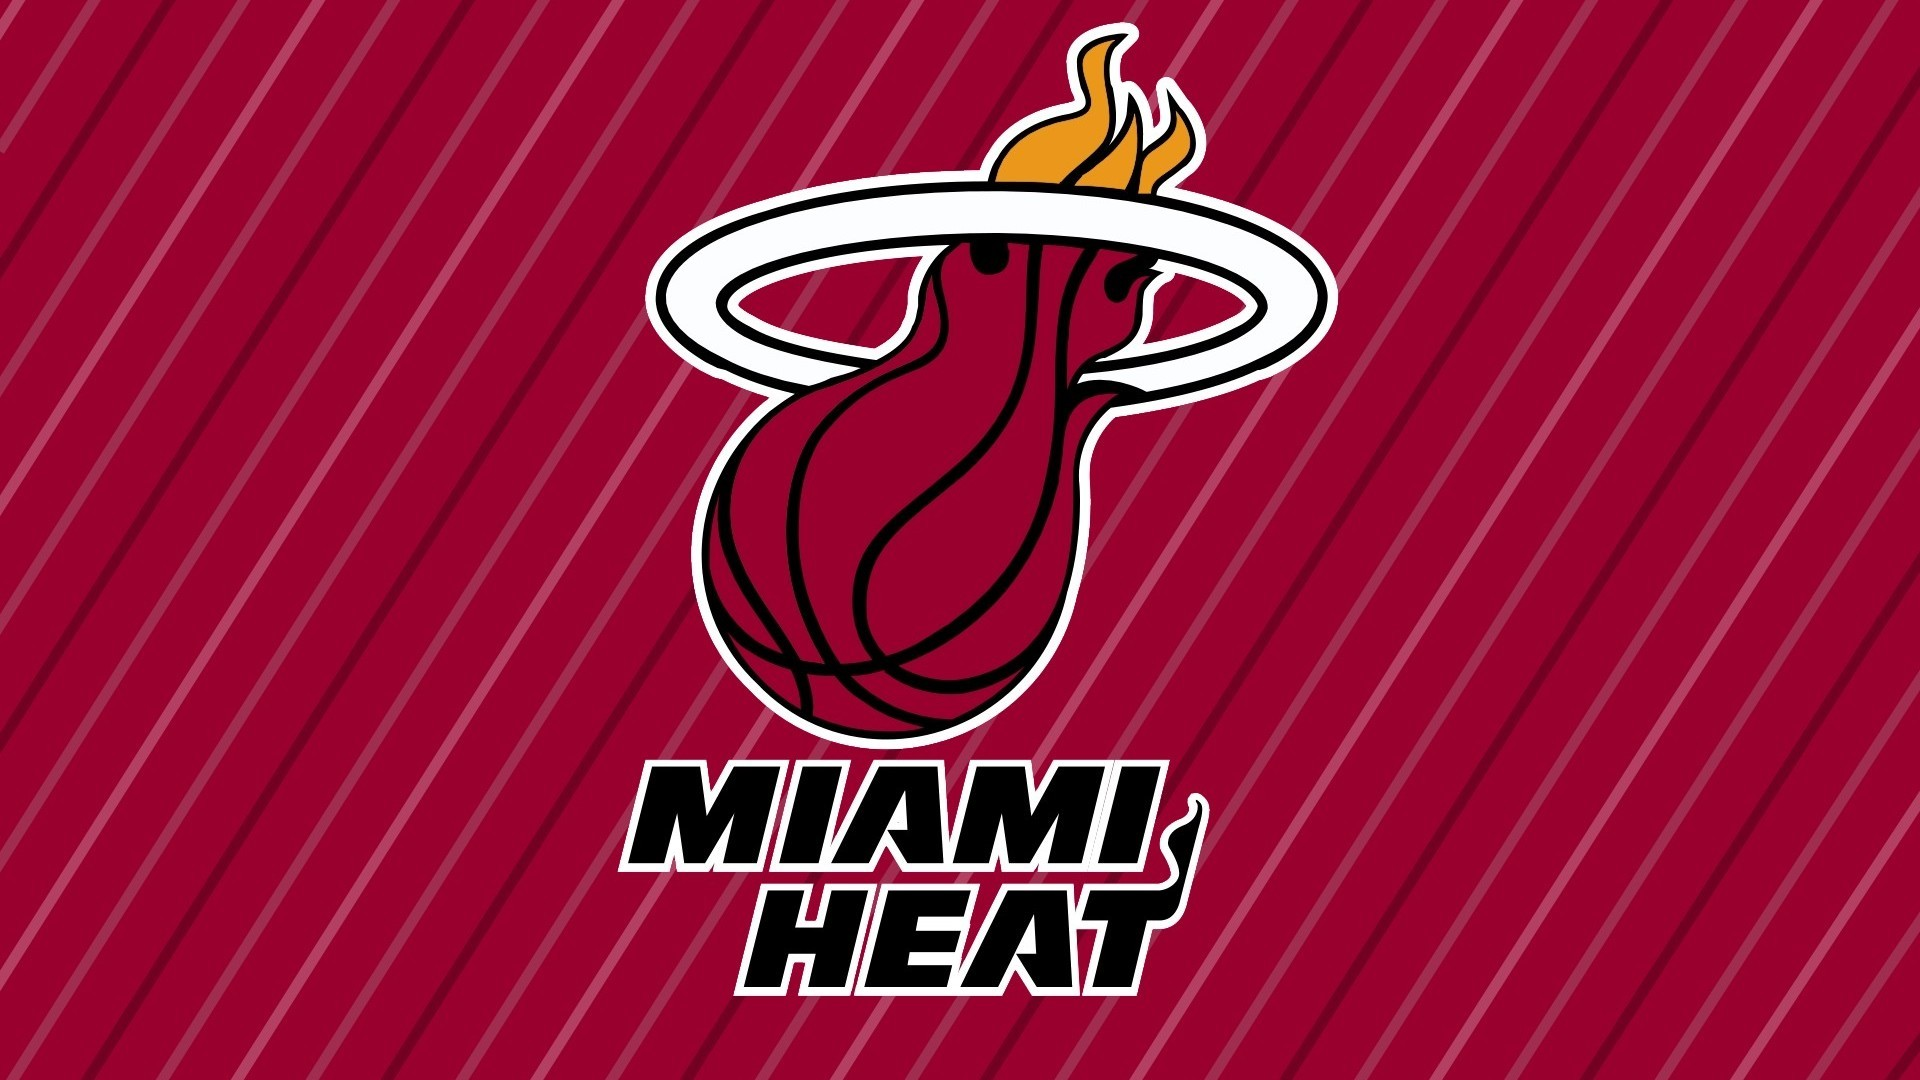 1920x1080 Wallpapers HD Miami Heat with high-resolution  pixel. You can use  this wallpaper